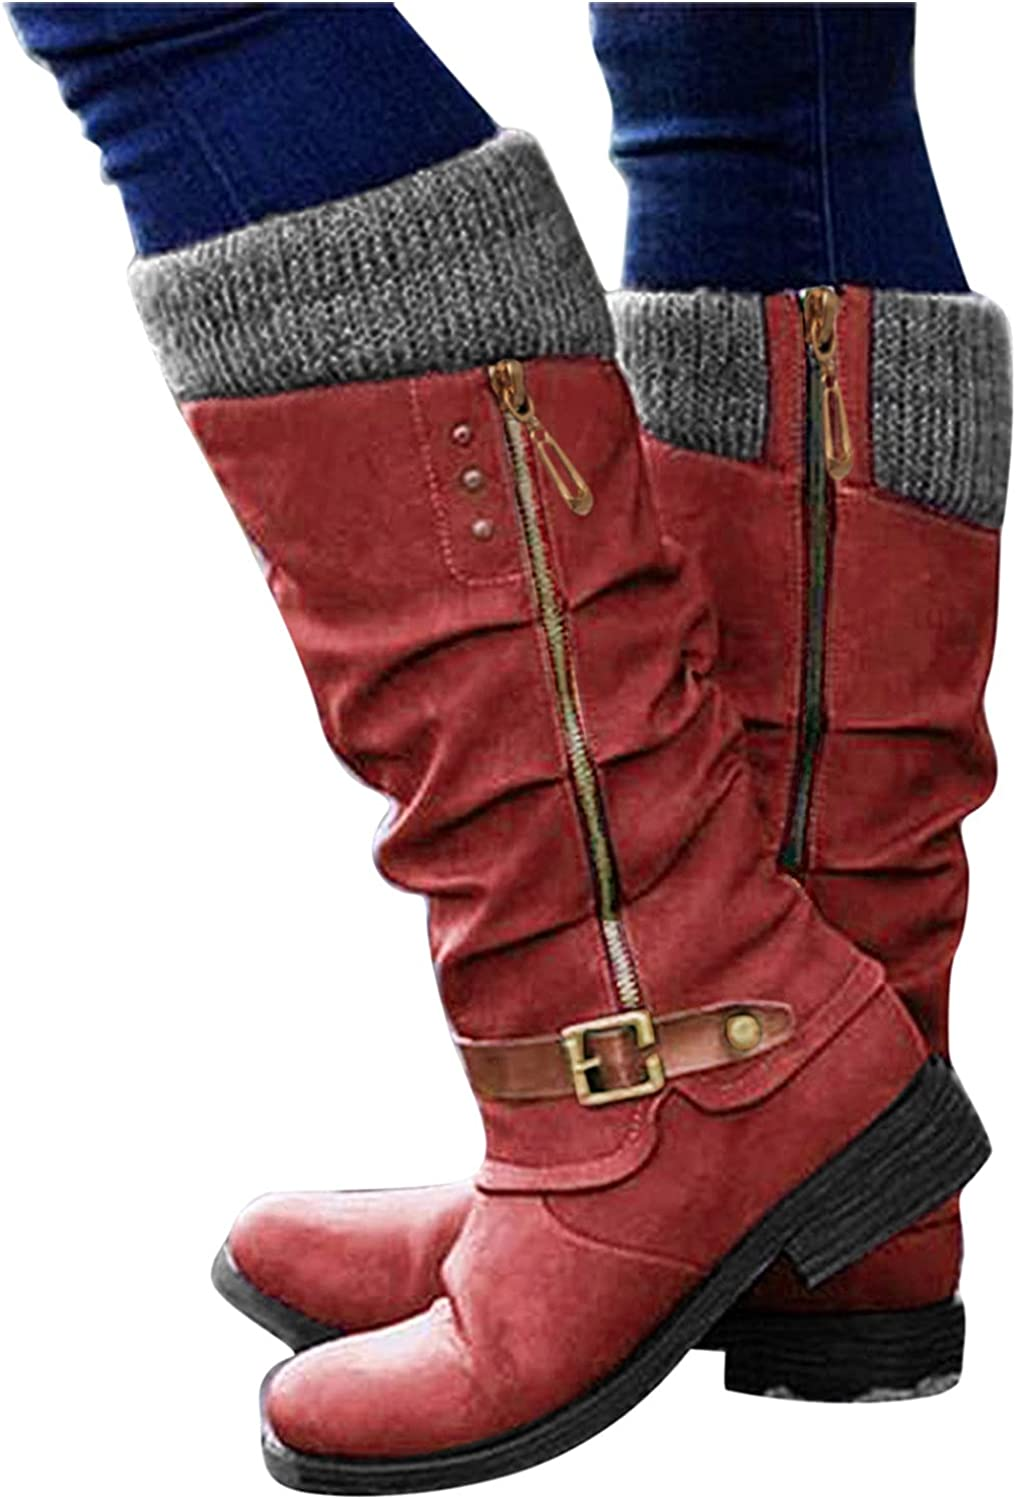 Boots for Women Low Heel Warm Boots Mid Calf Length Boots Retro Long Tube Zip Up Snow Boots Western Boots